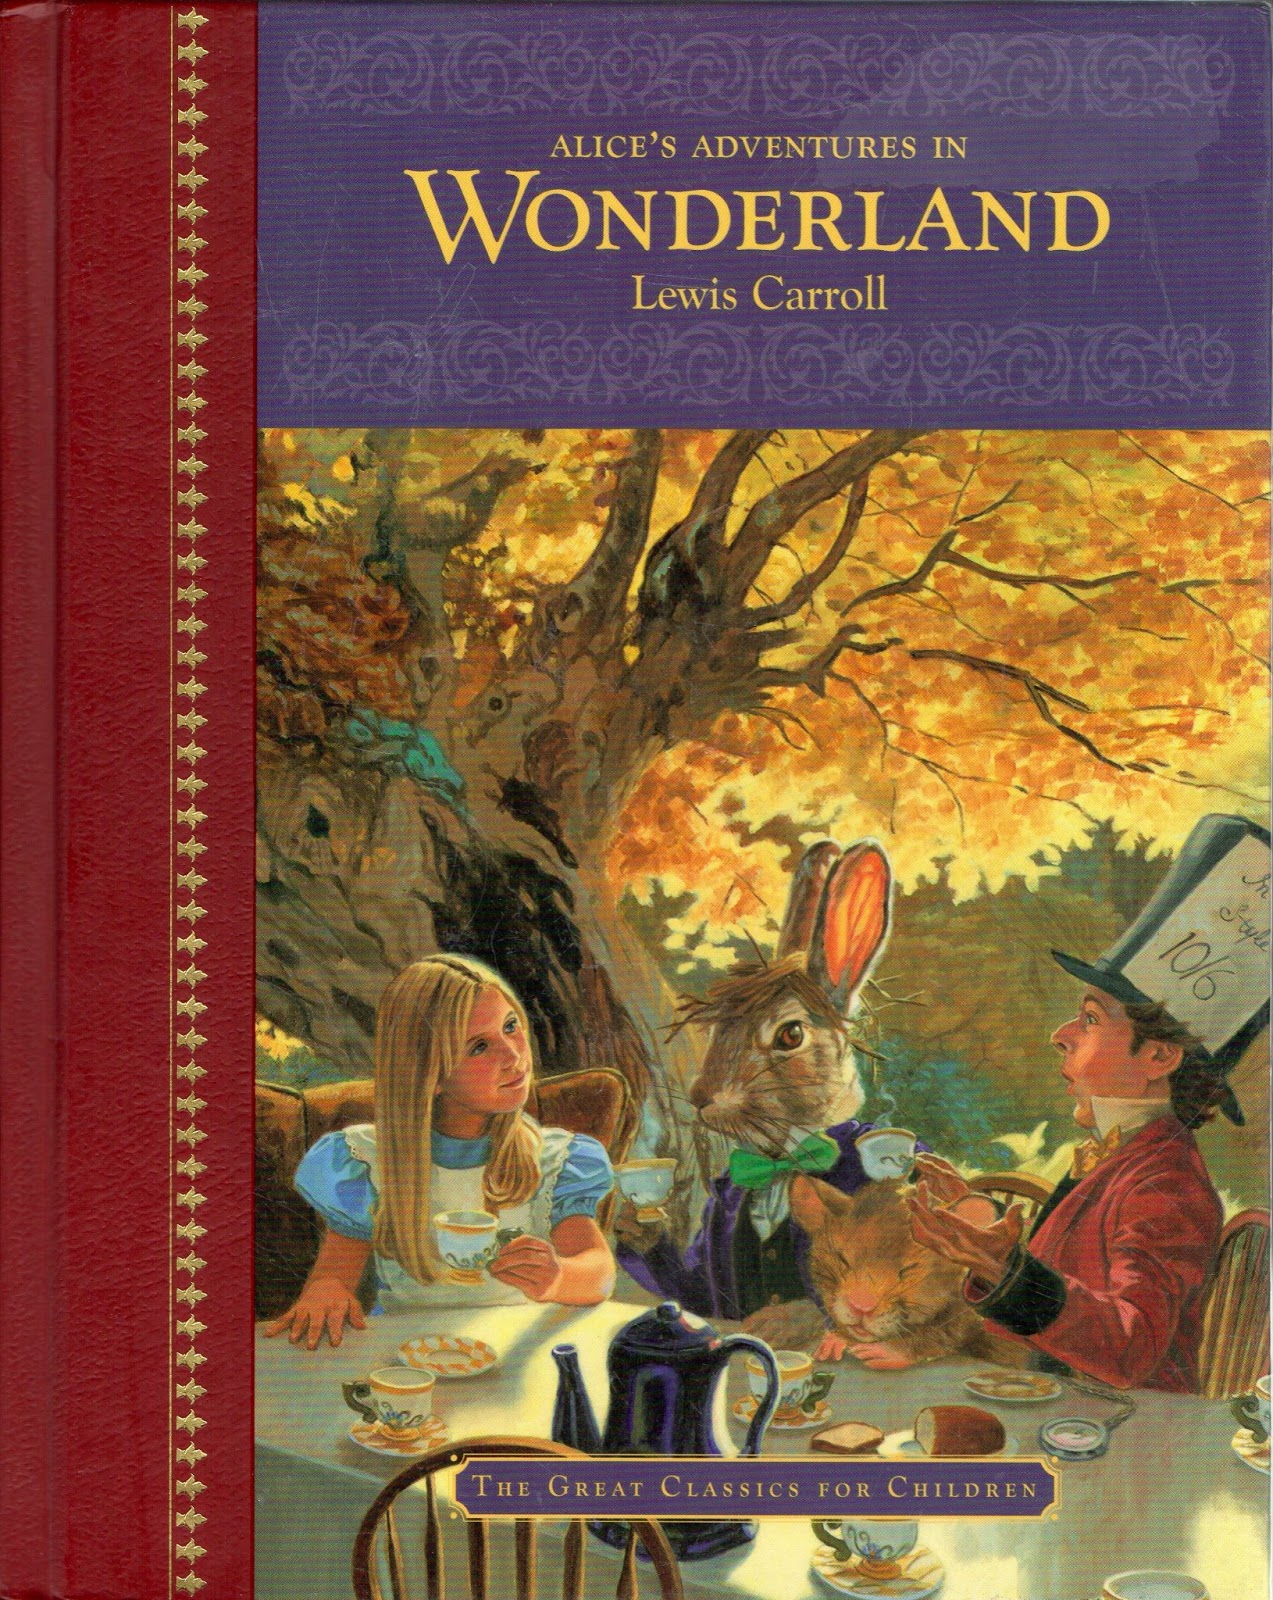 an analysis of carroll lewis childhood in adventures of alice in wonderland Alice's adventures in wonderland (commonly shortened to alice in wonderland) is an 1865 novel written by english author charles lutwidge dodgson over the pseudonym lewis carroll it tells of a girl named alice falling through a rabbit hole into a fantasy world populated by peculiar, anthropomorphic creatures.